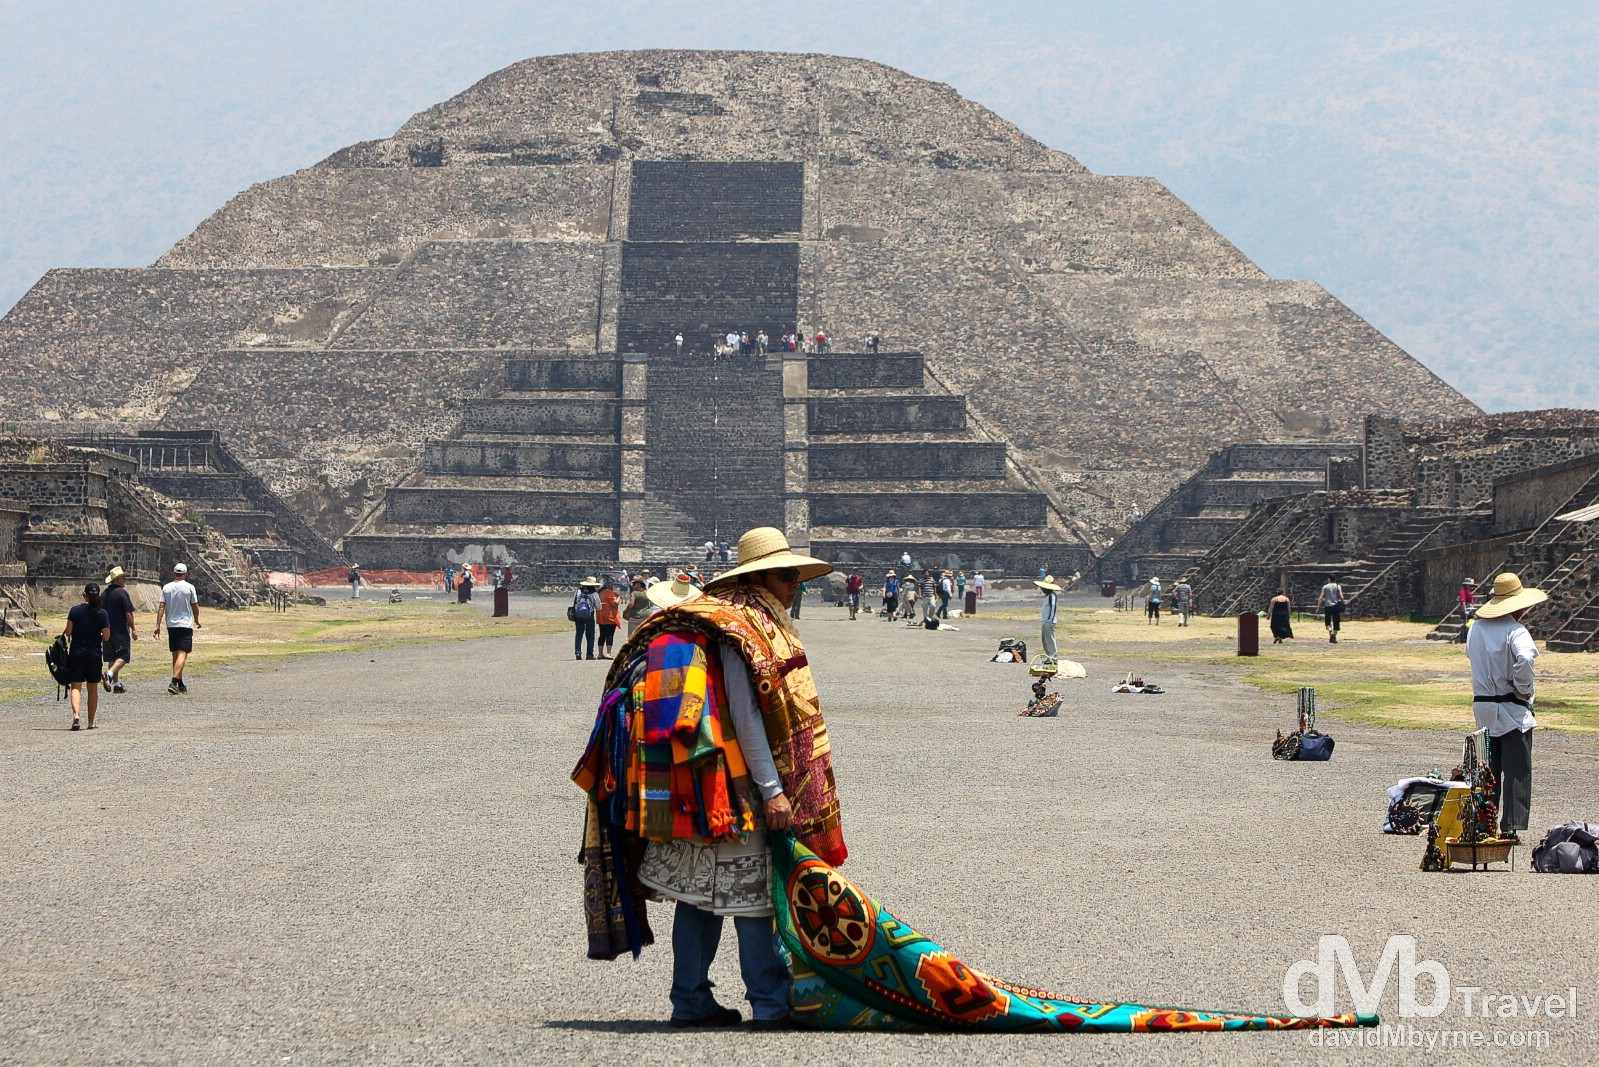 A hawker on Calzada de los Muertos (the Avenue of the Dead) in full view of the Piramide de la Luna (Pyramid of the Moon) in Teotihuacan, Mexico. April 29th 2013.